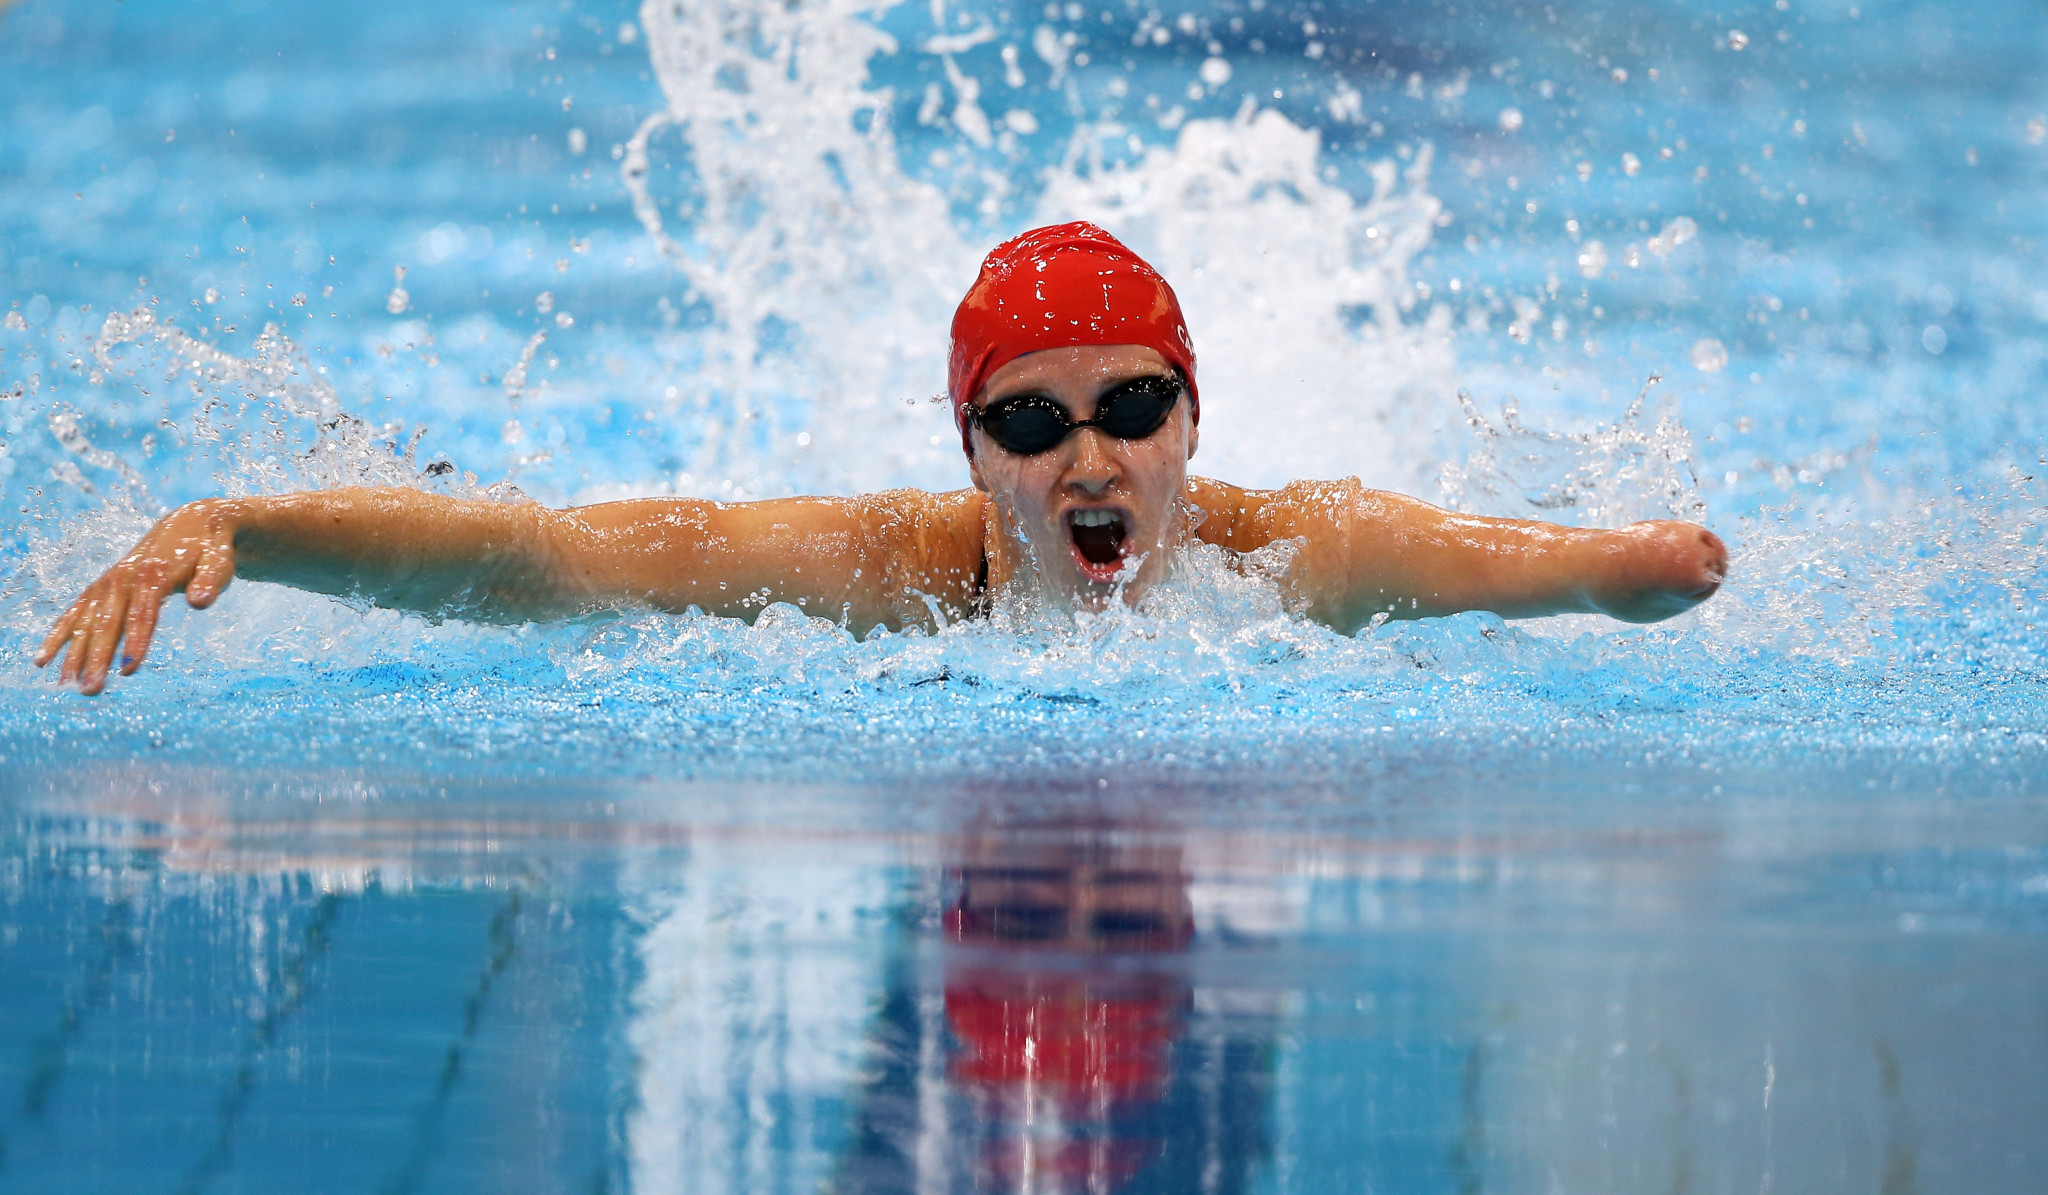 Claire Cashmore was second after the public vote ©Getty Images